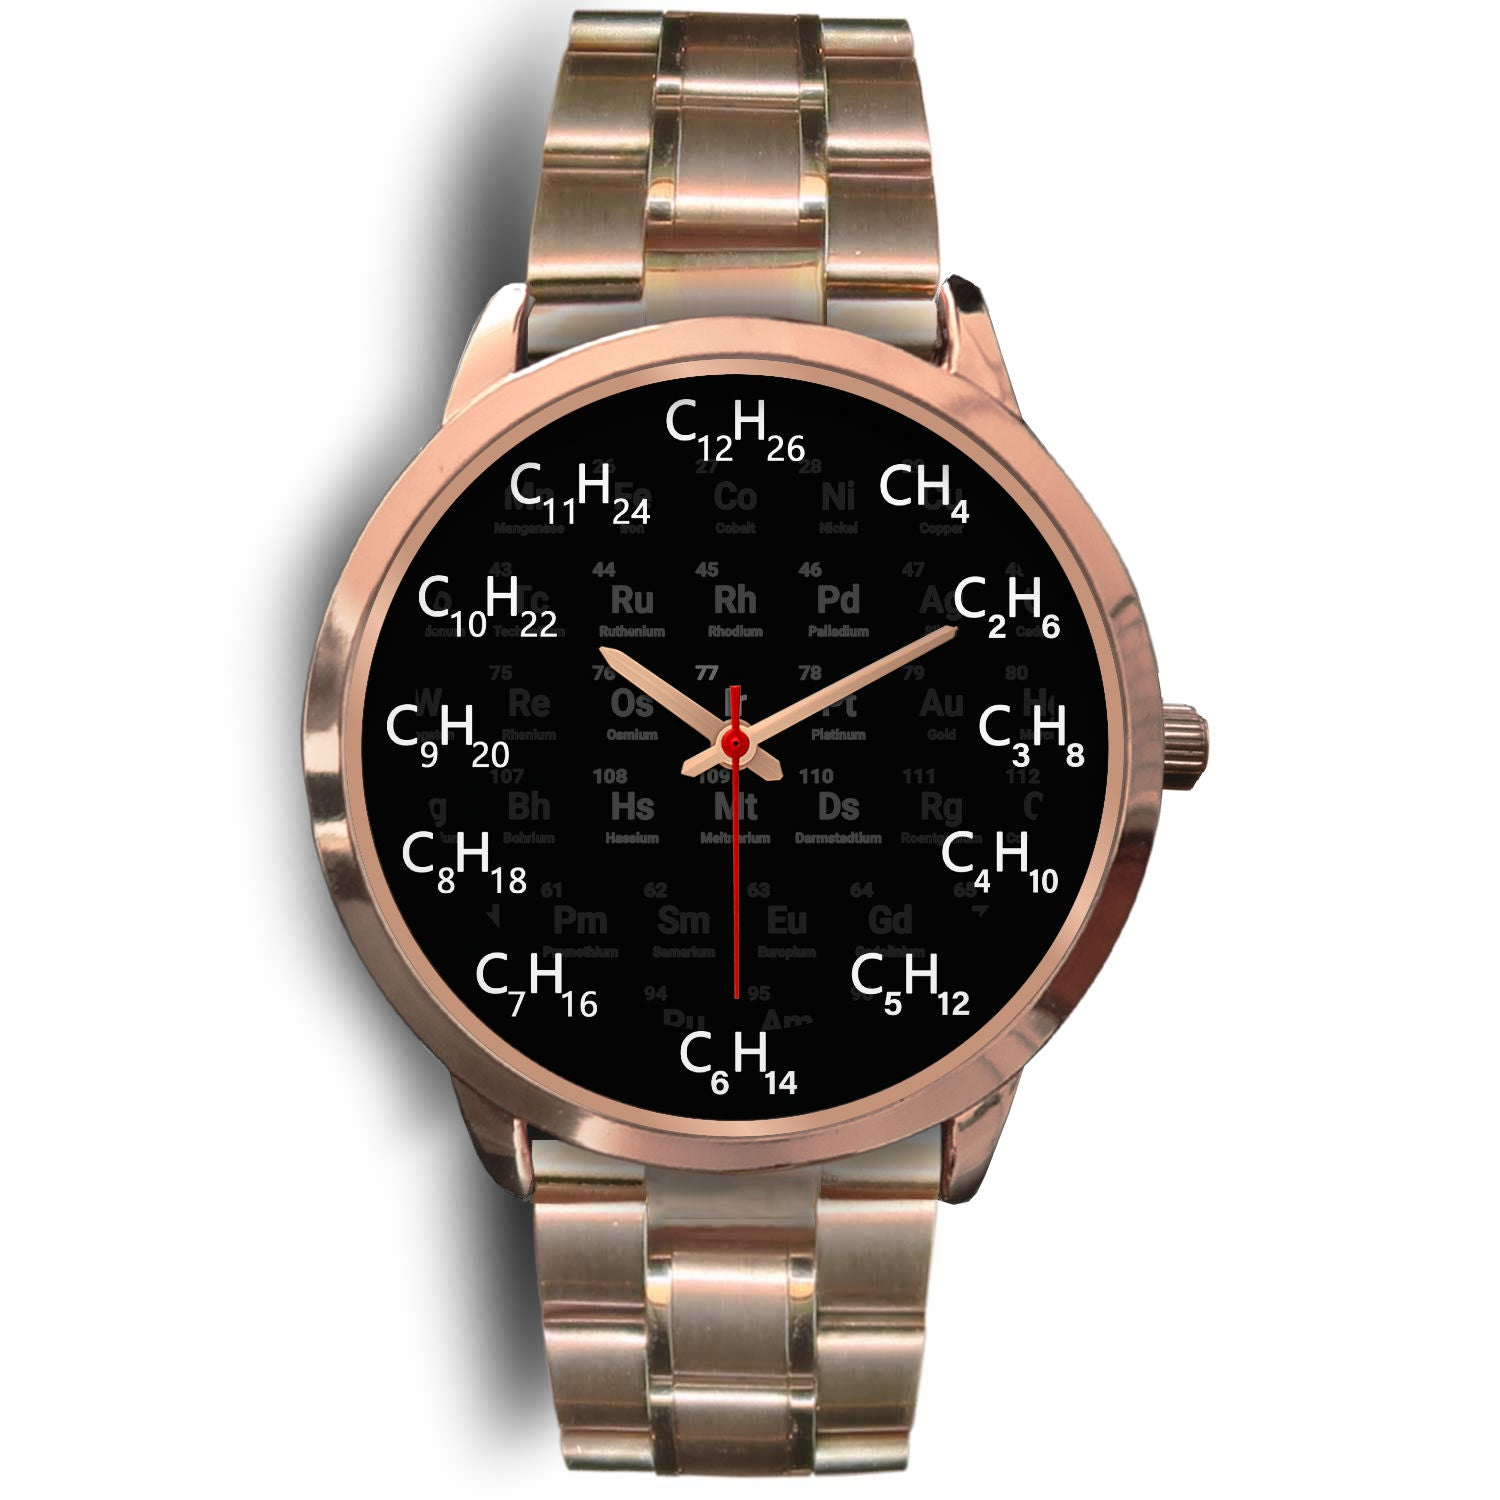 VIRA chemical formula rose gold stainless steel watch for awesome teachers